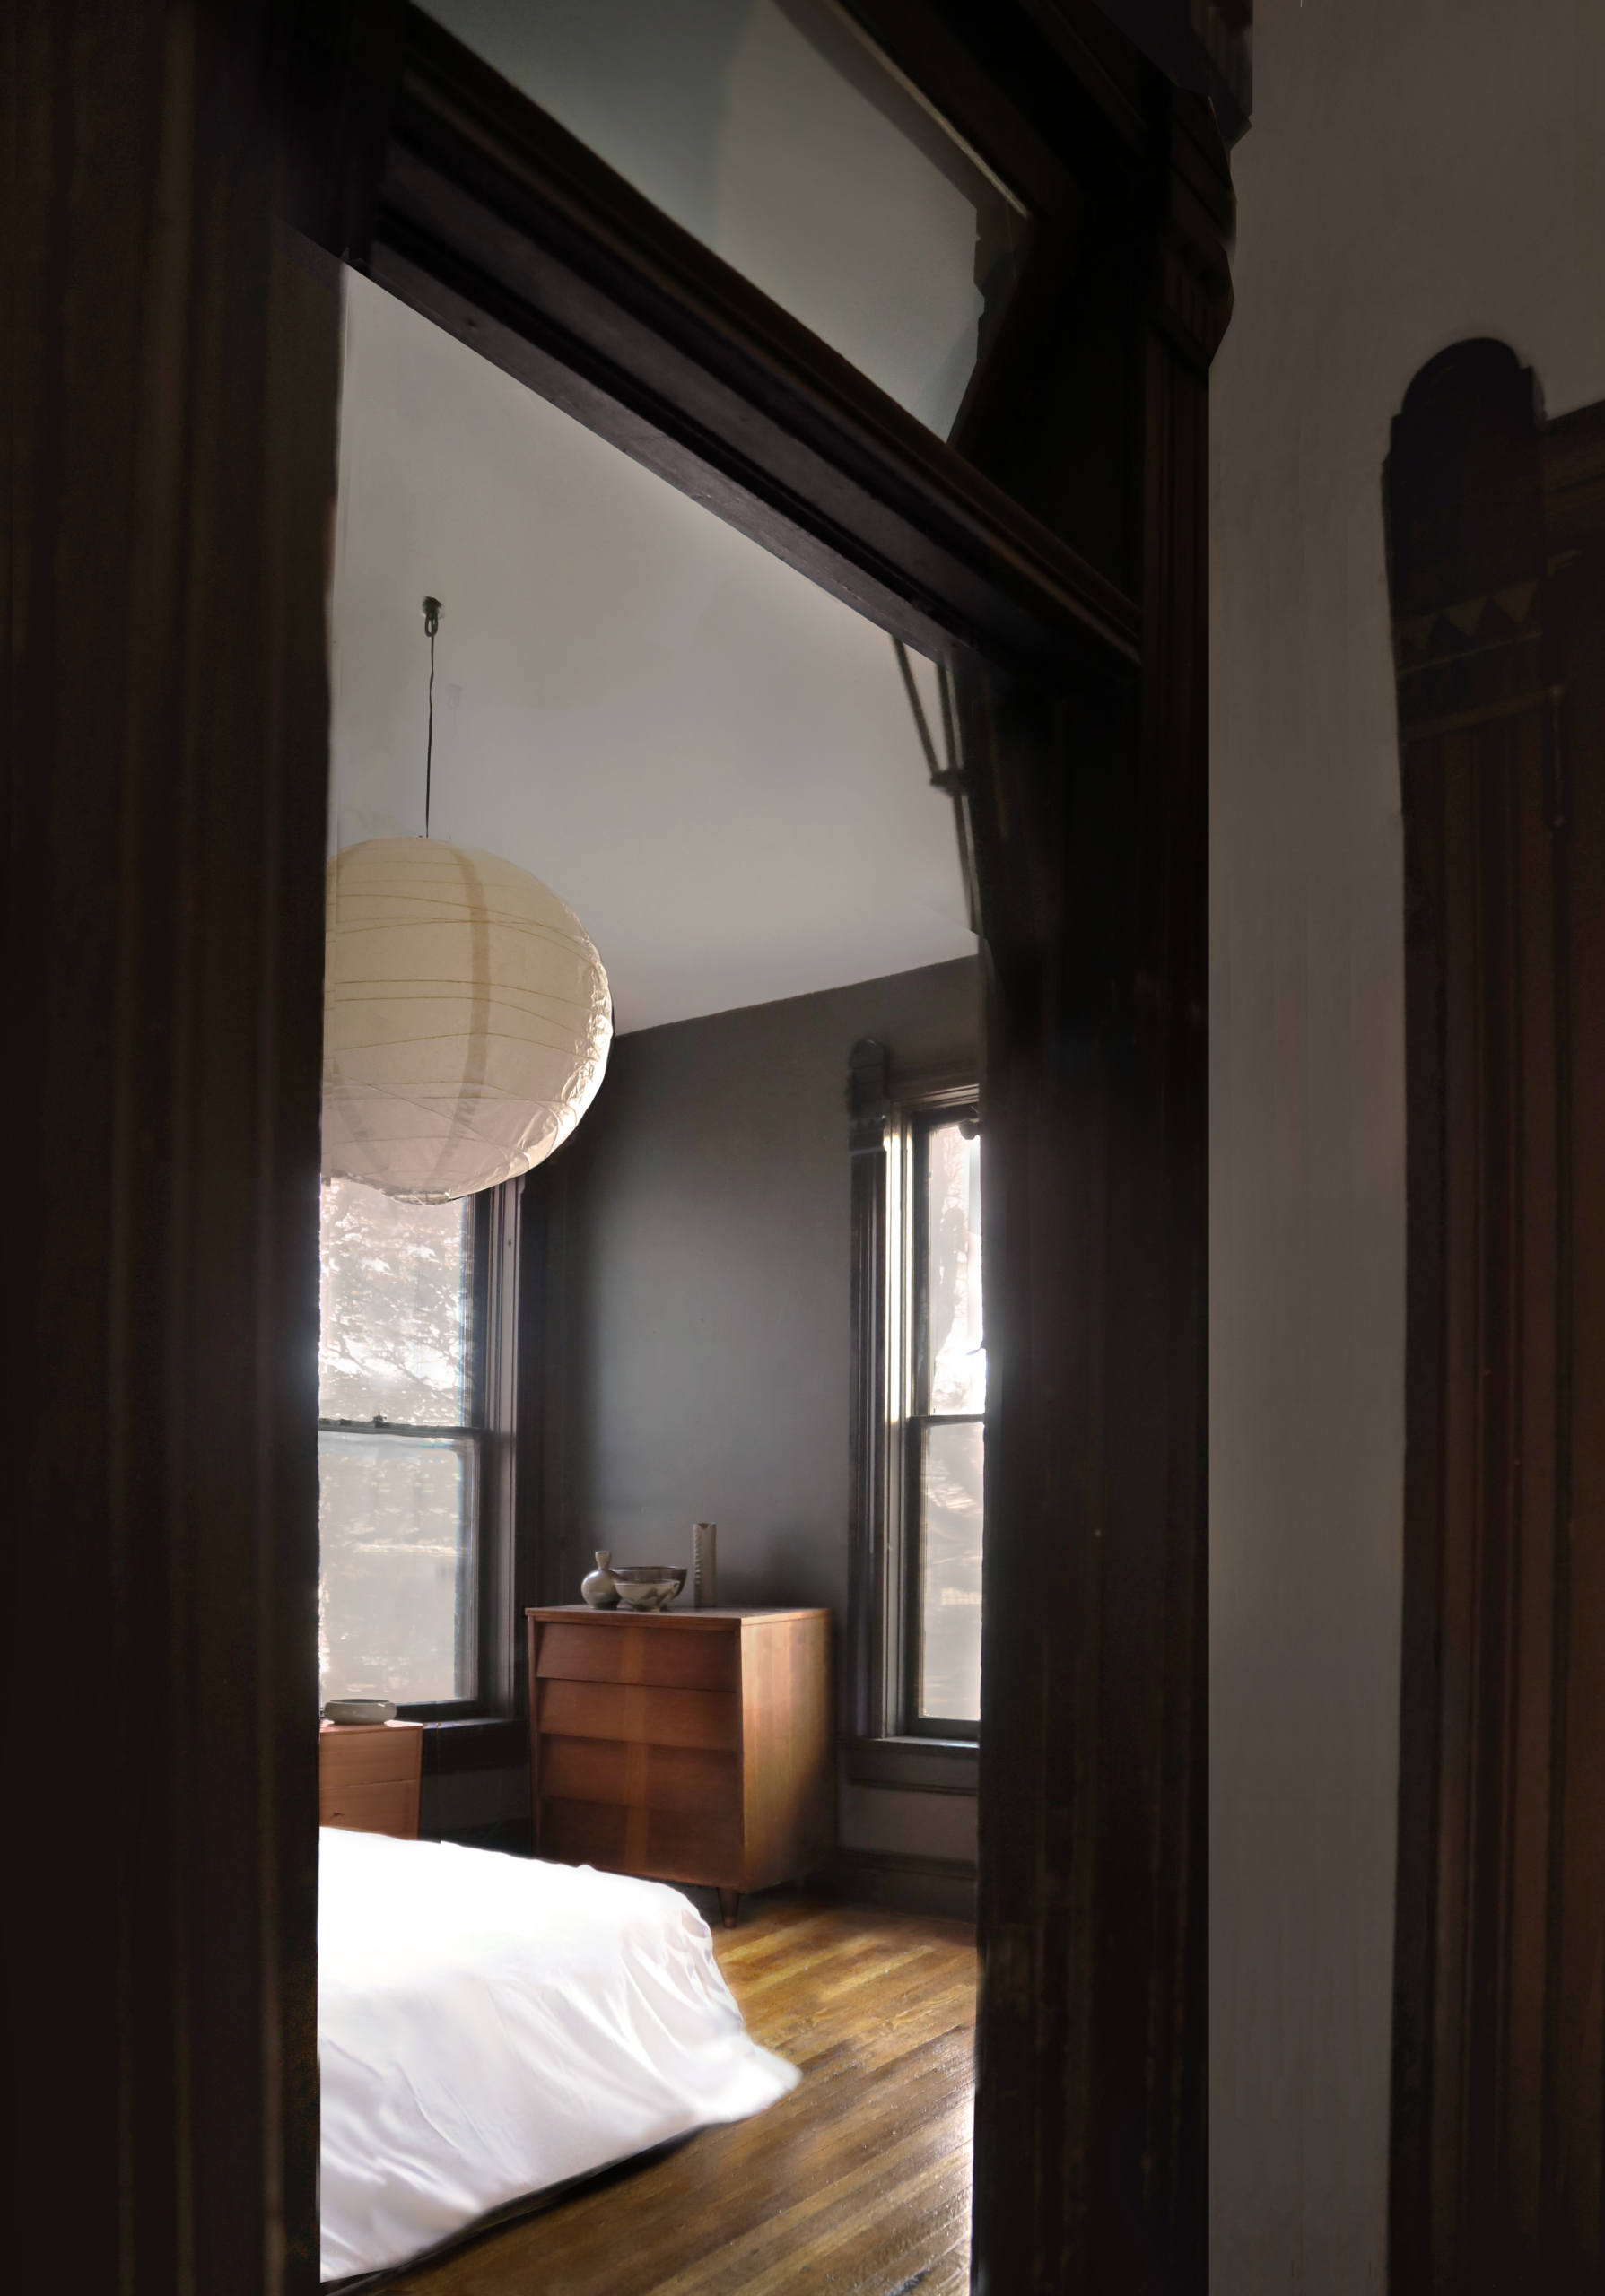 In a bedroom, another paper lantern accentuates the high ceilings.